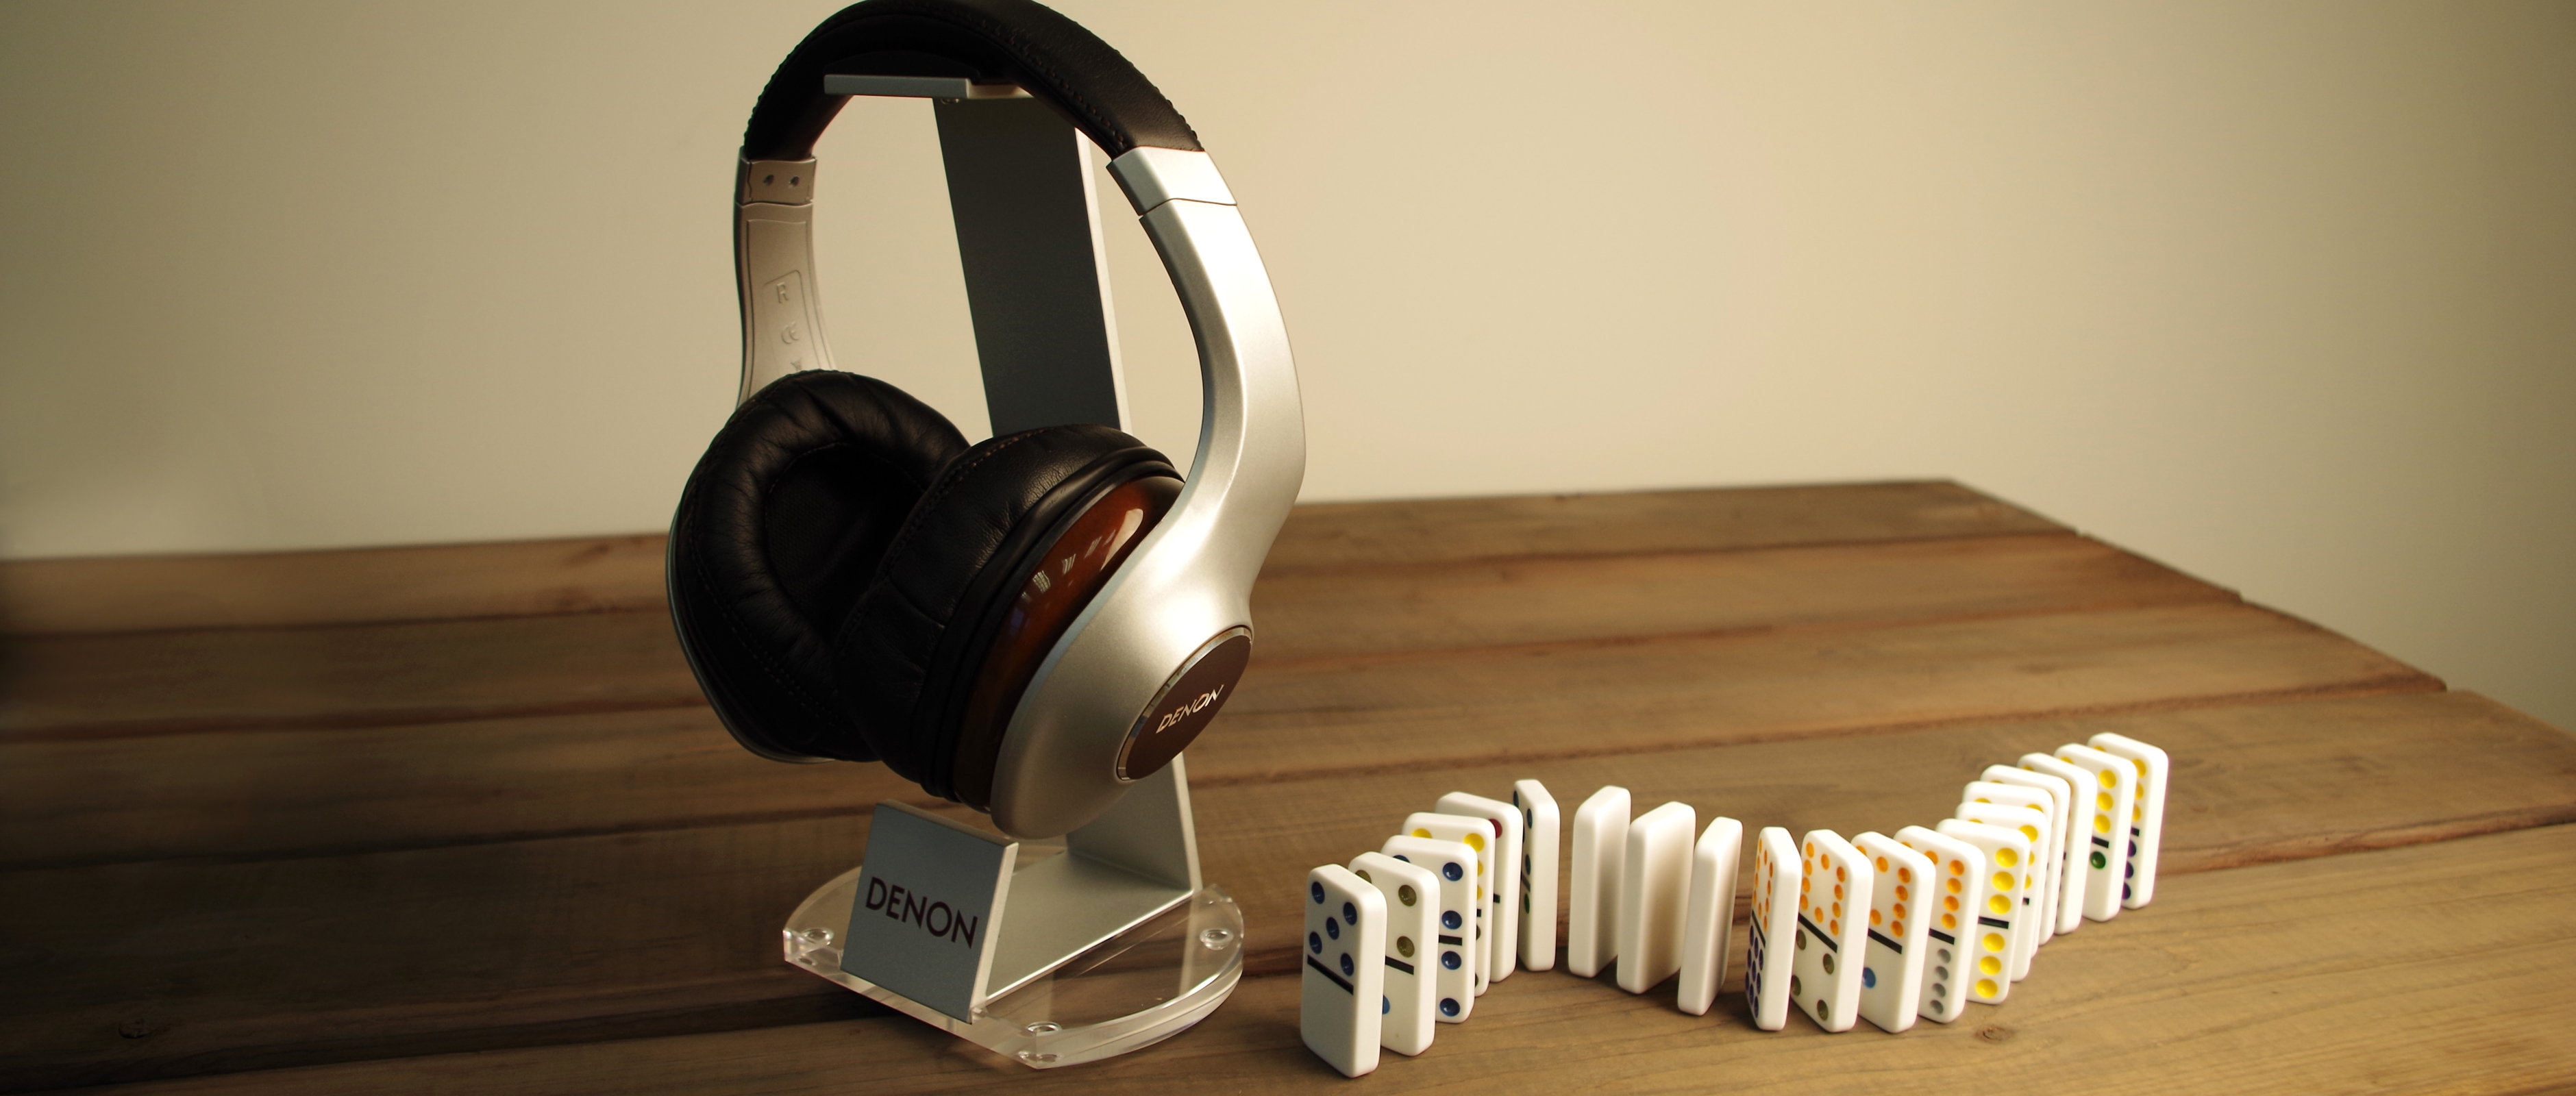 The Denon AH-D7100 headphones ship with a fancy stand.